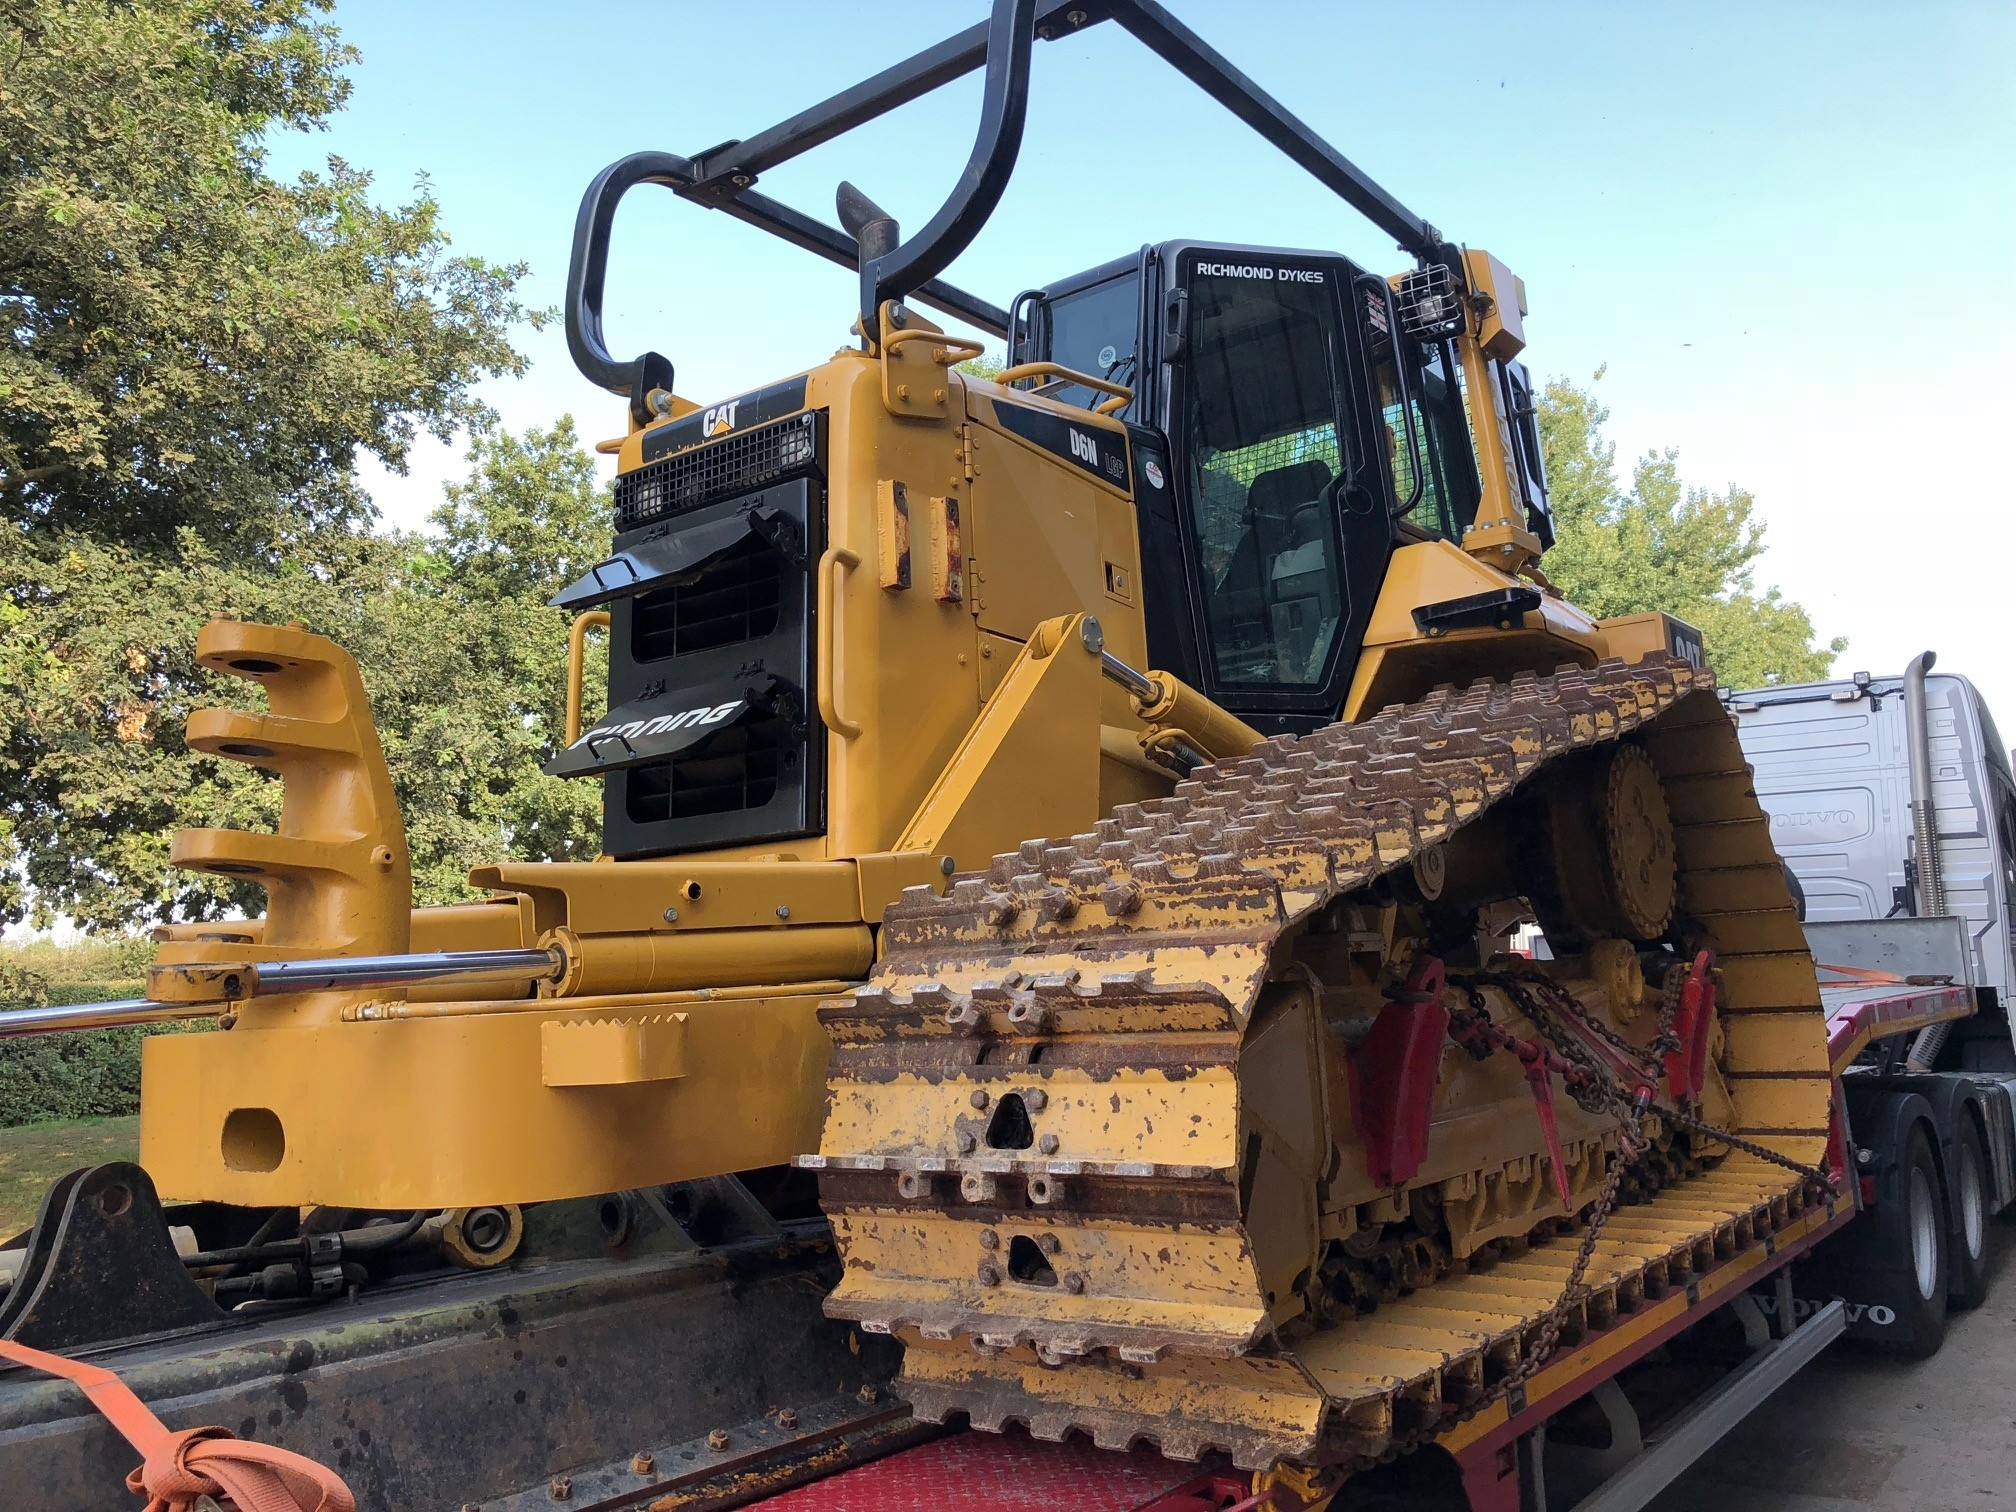 2011 Cat D6N LGP PAT blade 1600hrs